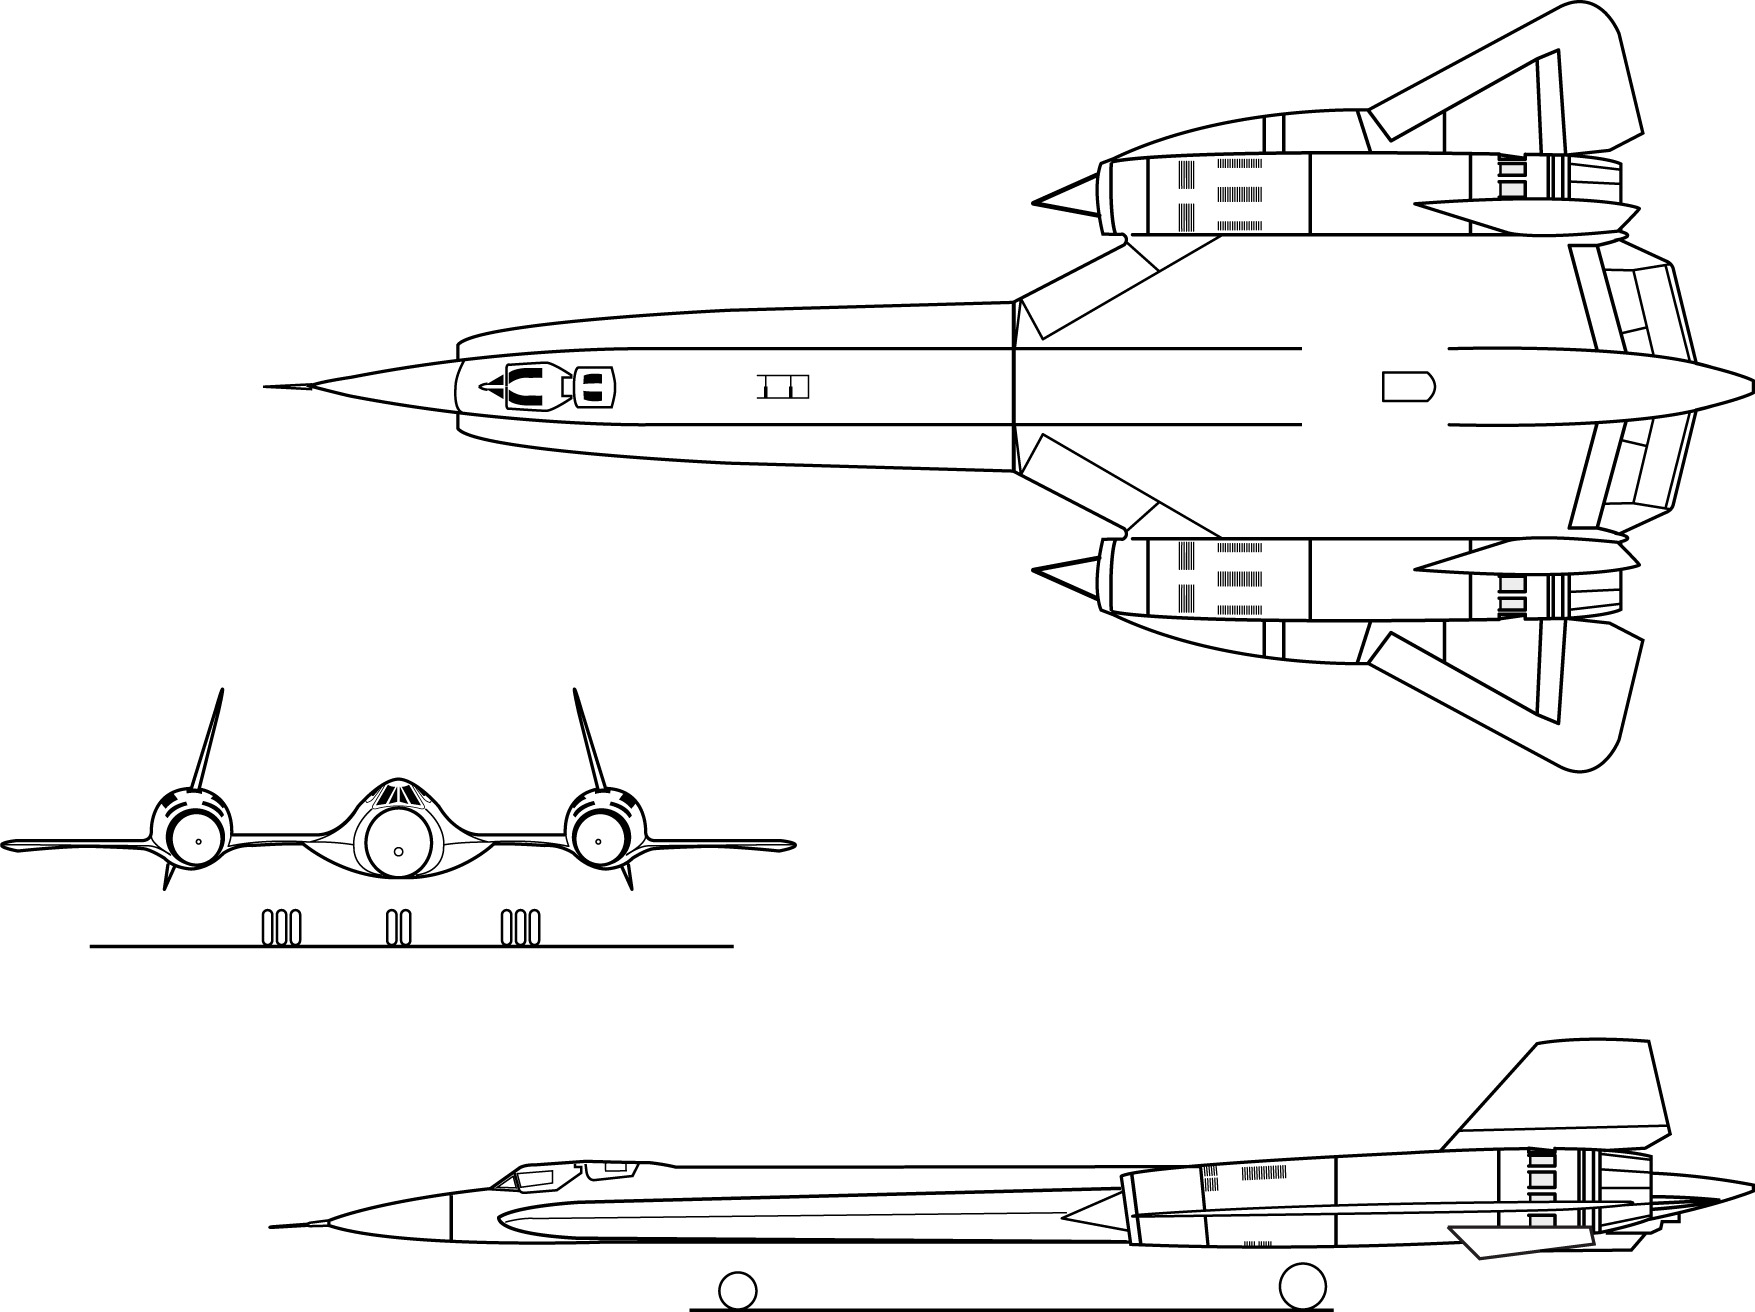 15 Illustrator Tutorials For Creating Isometric Illustrations Vector 5017 together with Fw 190 A 8 Walter Wagner 611991088 furthermore Gloster Gladiator besides Showthread likewise Orthographic Drawing Essay. on aircraft orthographic projection